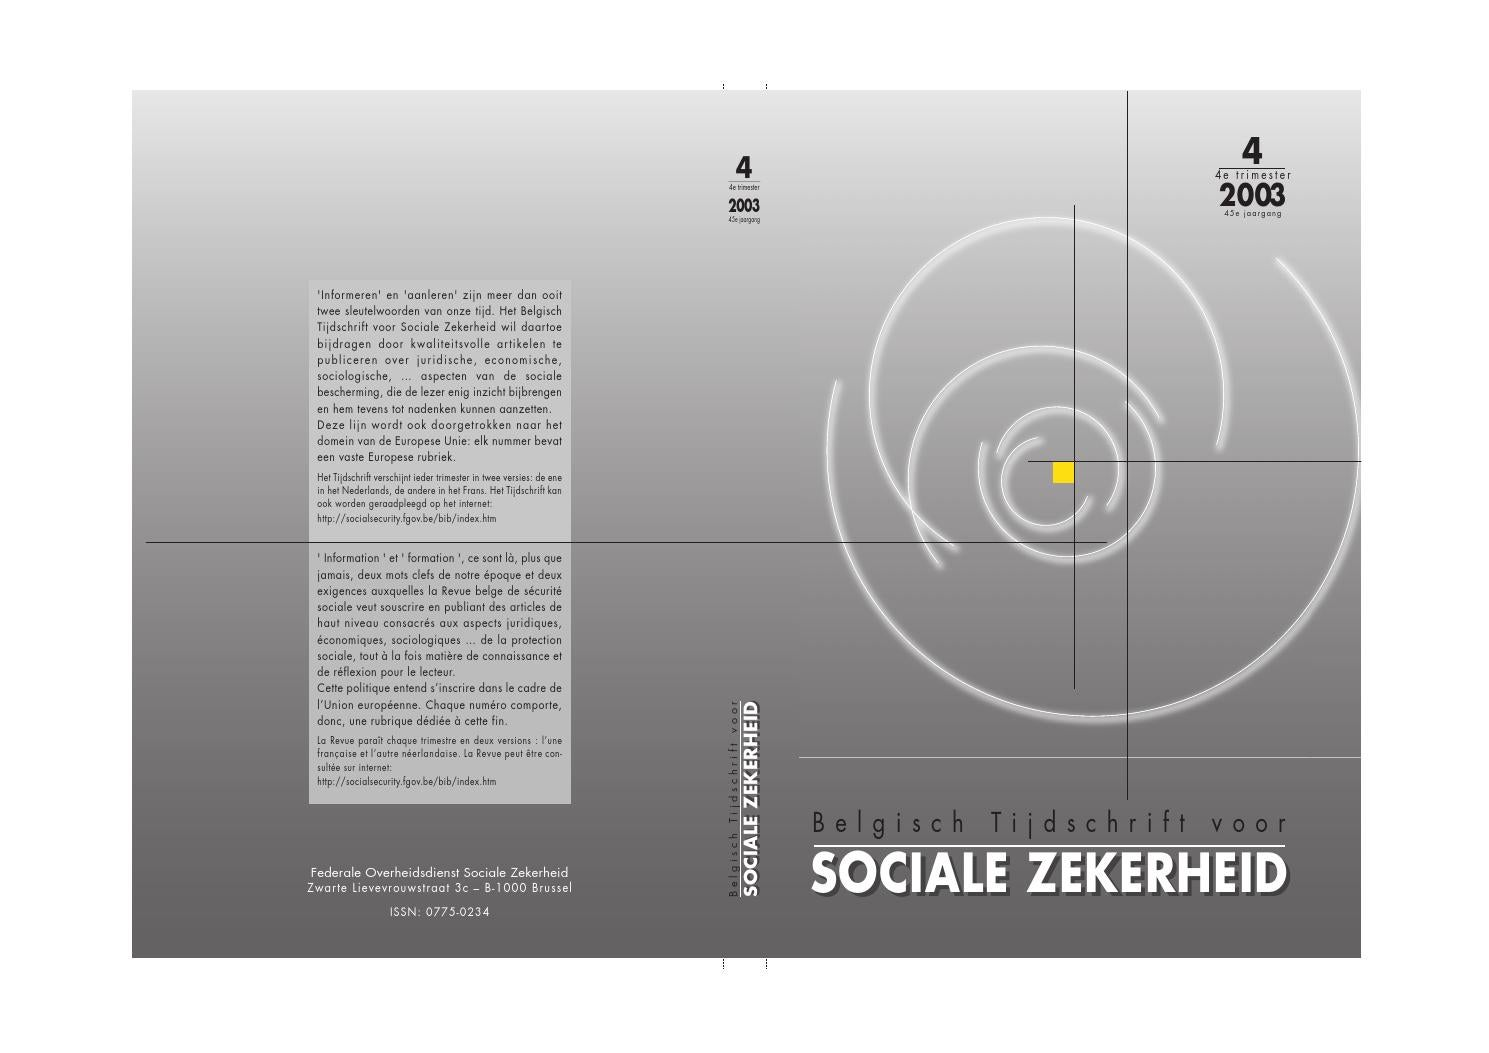 Btsz Nummer 42003 By Fps Social Security Issuu